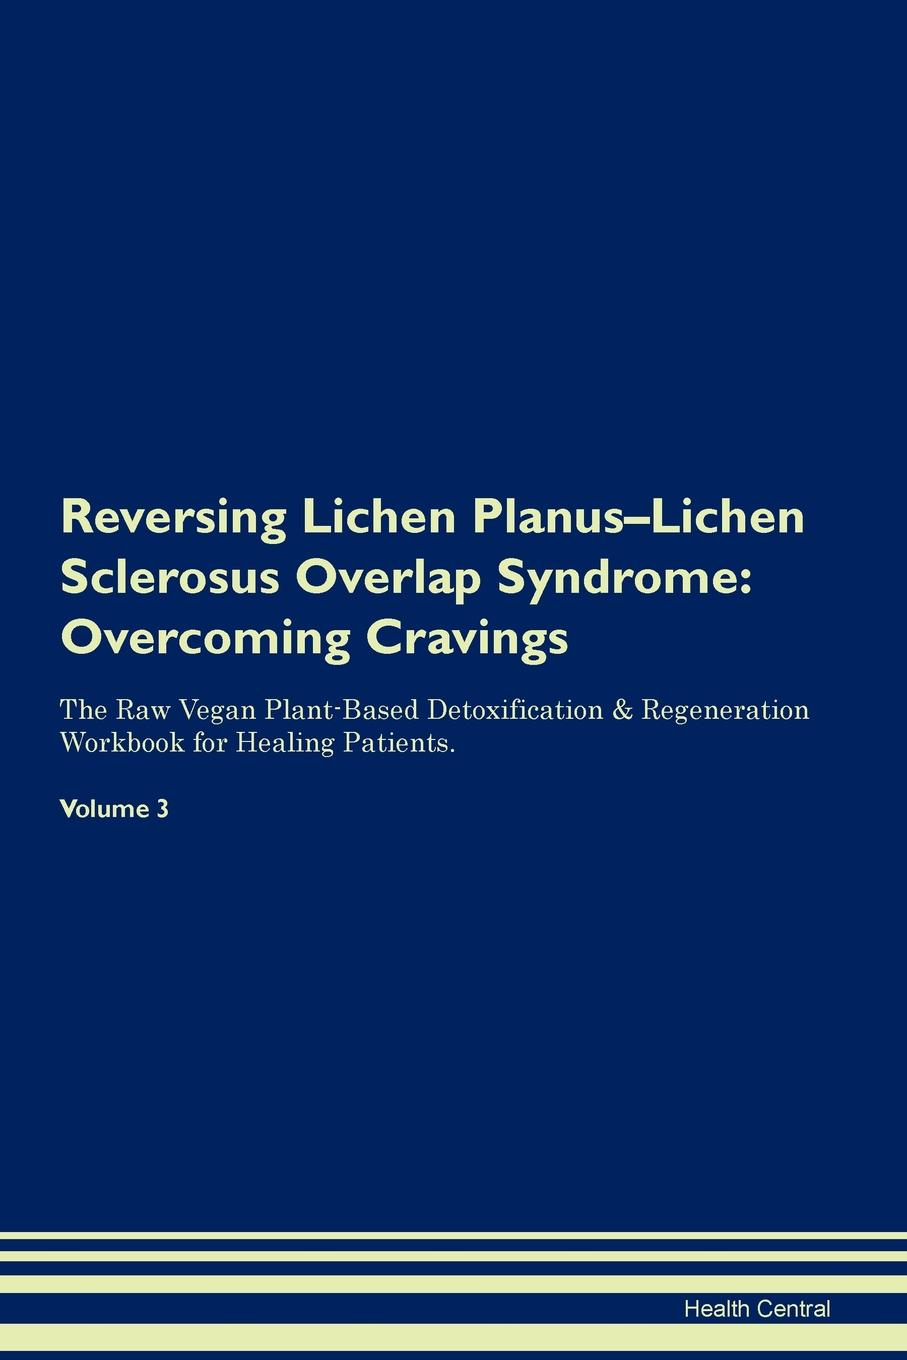 Фото - Health Central Reversing Lichen Planus-Lichen Sclerosus Overlap Syndrome. Overcoming Cravings The Raw Vegan Plant-Based Detoxification & Regeneration Workbook for Healing Patients. Volume 3 health central reversing lichen sclerosus overcoming cravings the raw vegan plant based detoxification regeneration workbook for healing patients volume 3